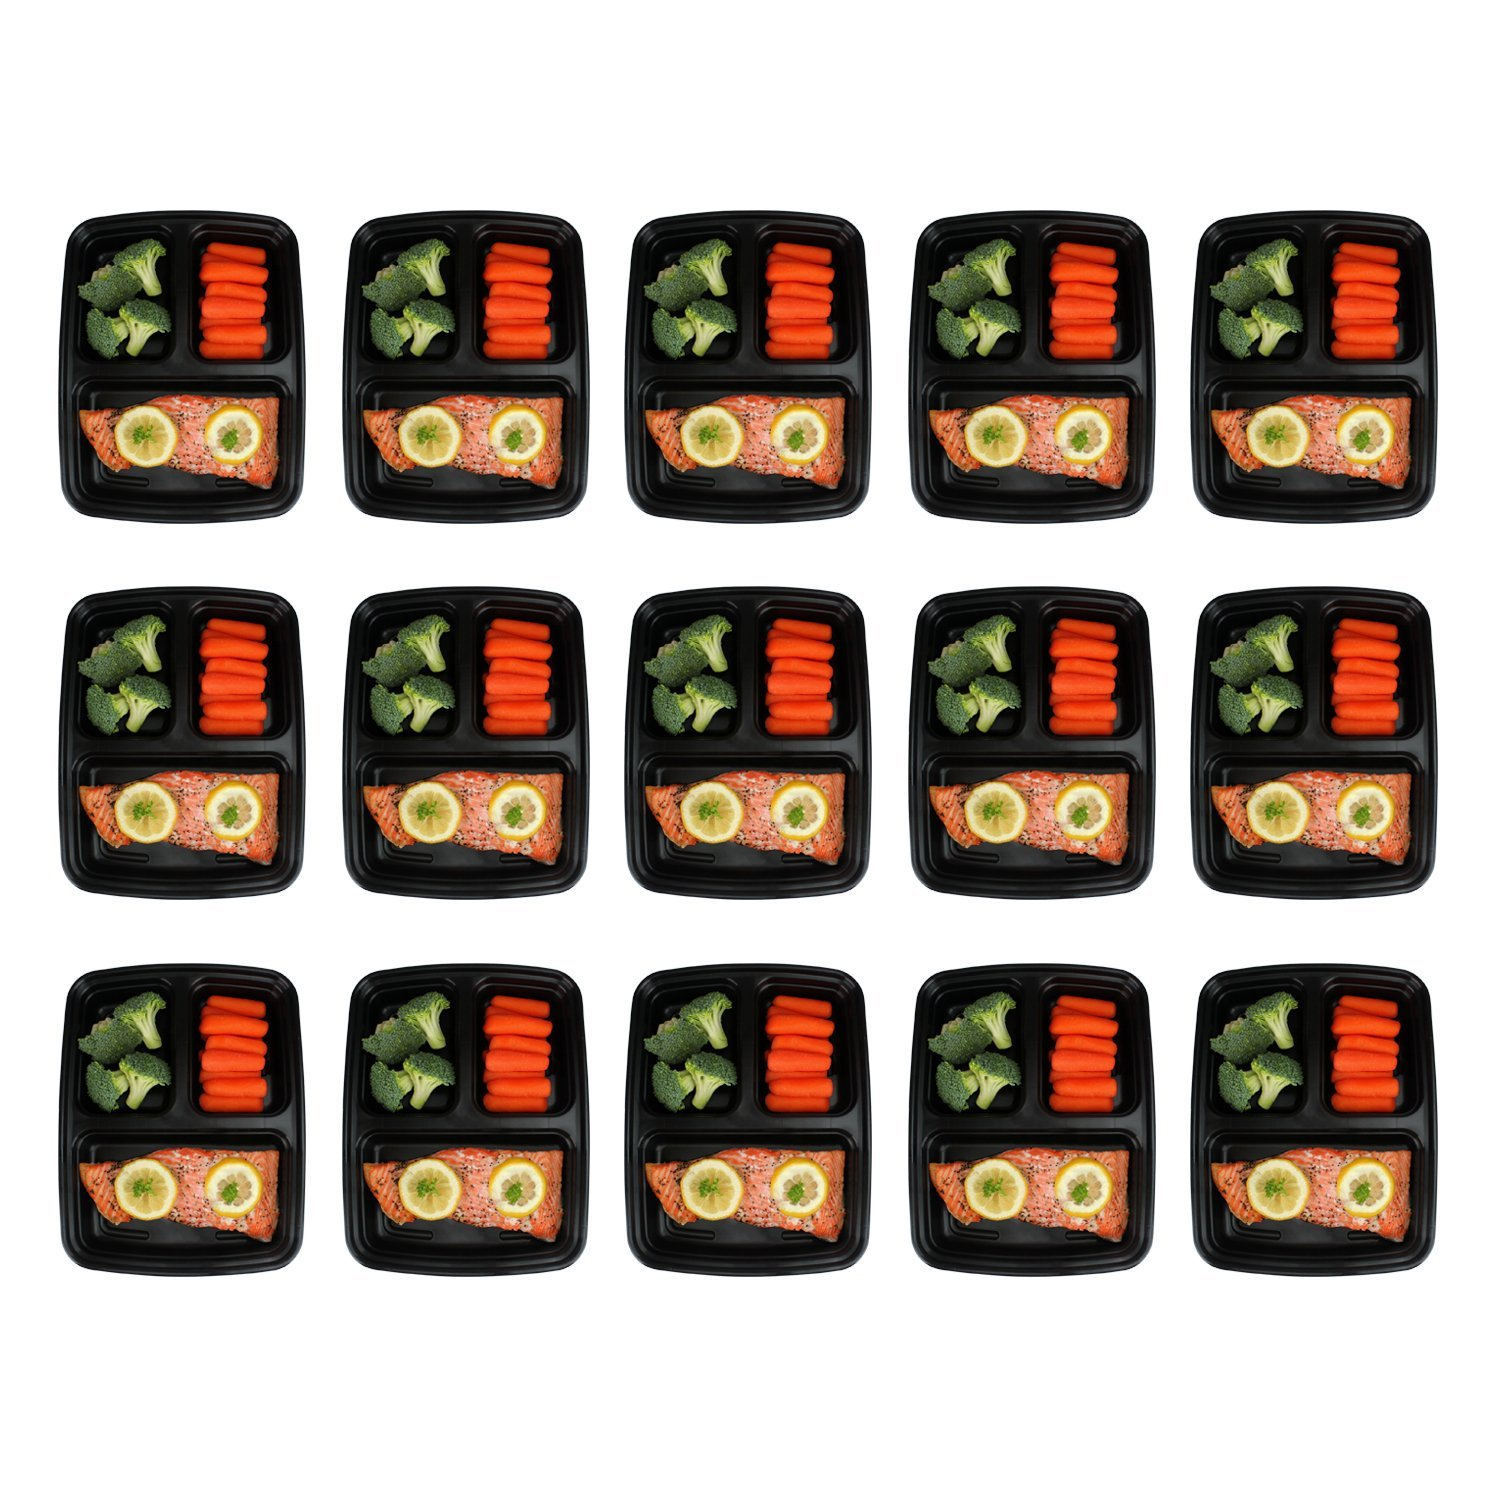 Freshware Meal Prep Containers [15 Pack] 3 Compartment with Lids, Food Containers, Lunch Box | BPA Free | Stackable | Bento Box, Microwave/Dishwasher/Freezer Safe, Portion Control, 21 day fix (32 oz) by Freshware (Image #2)